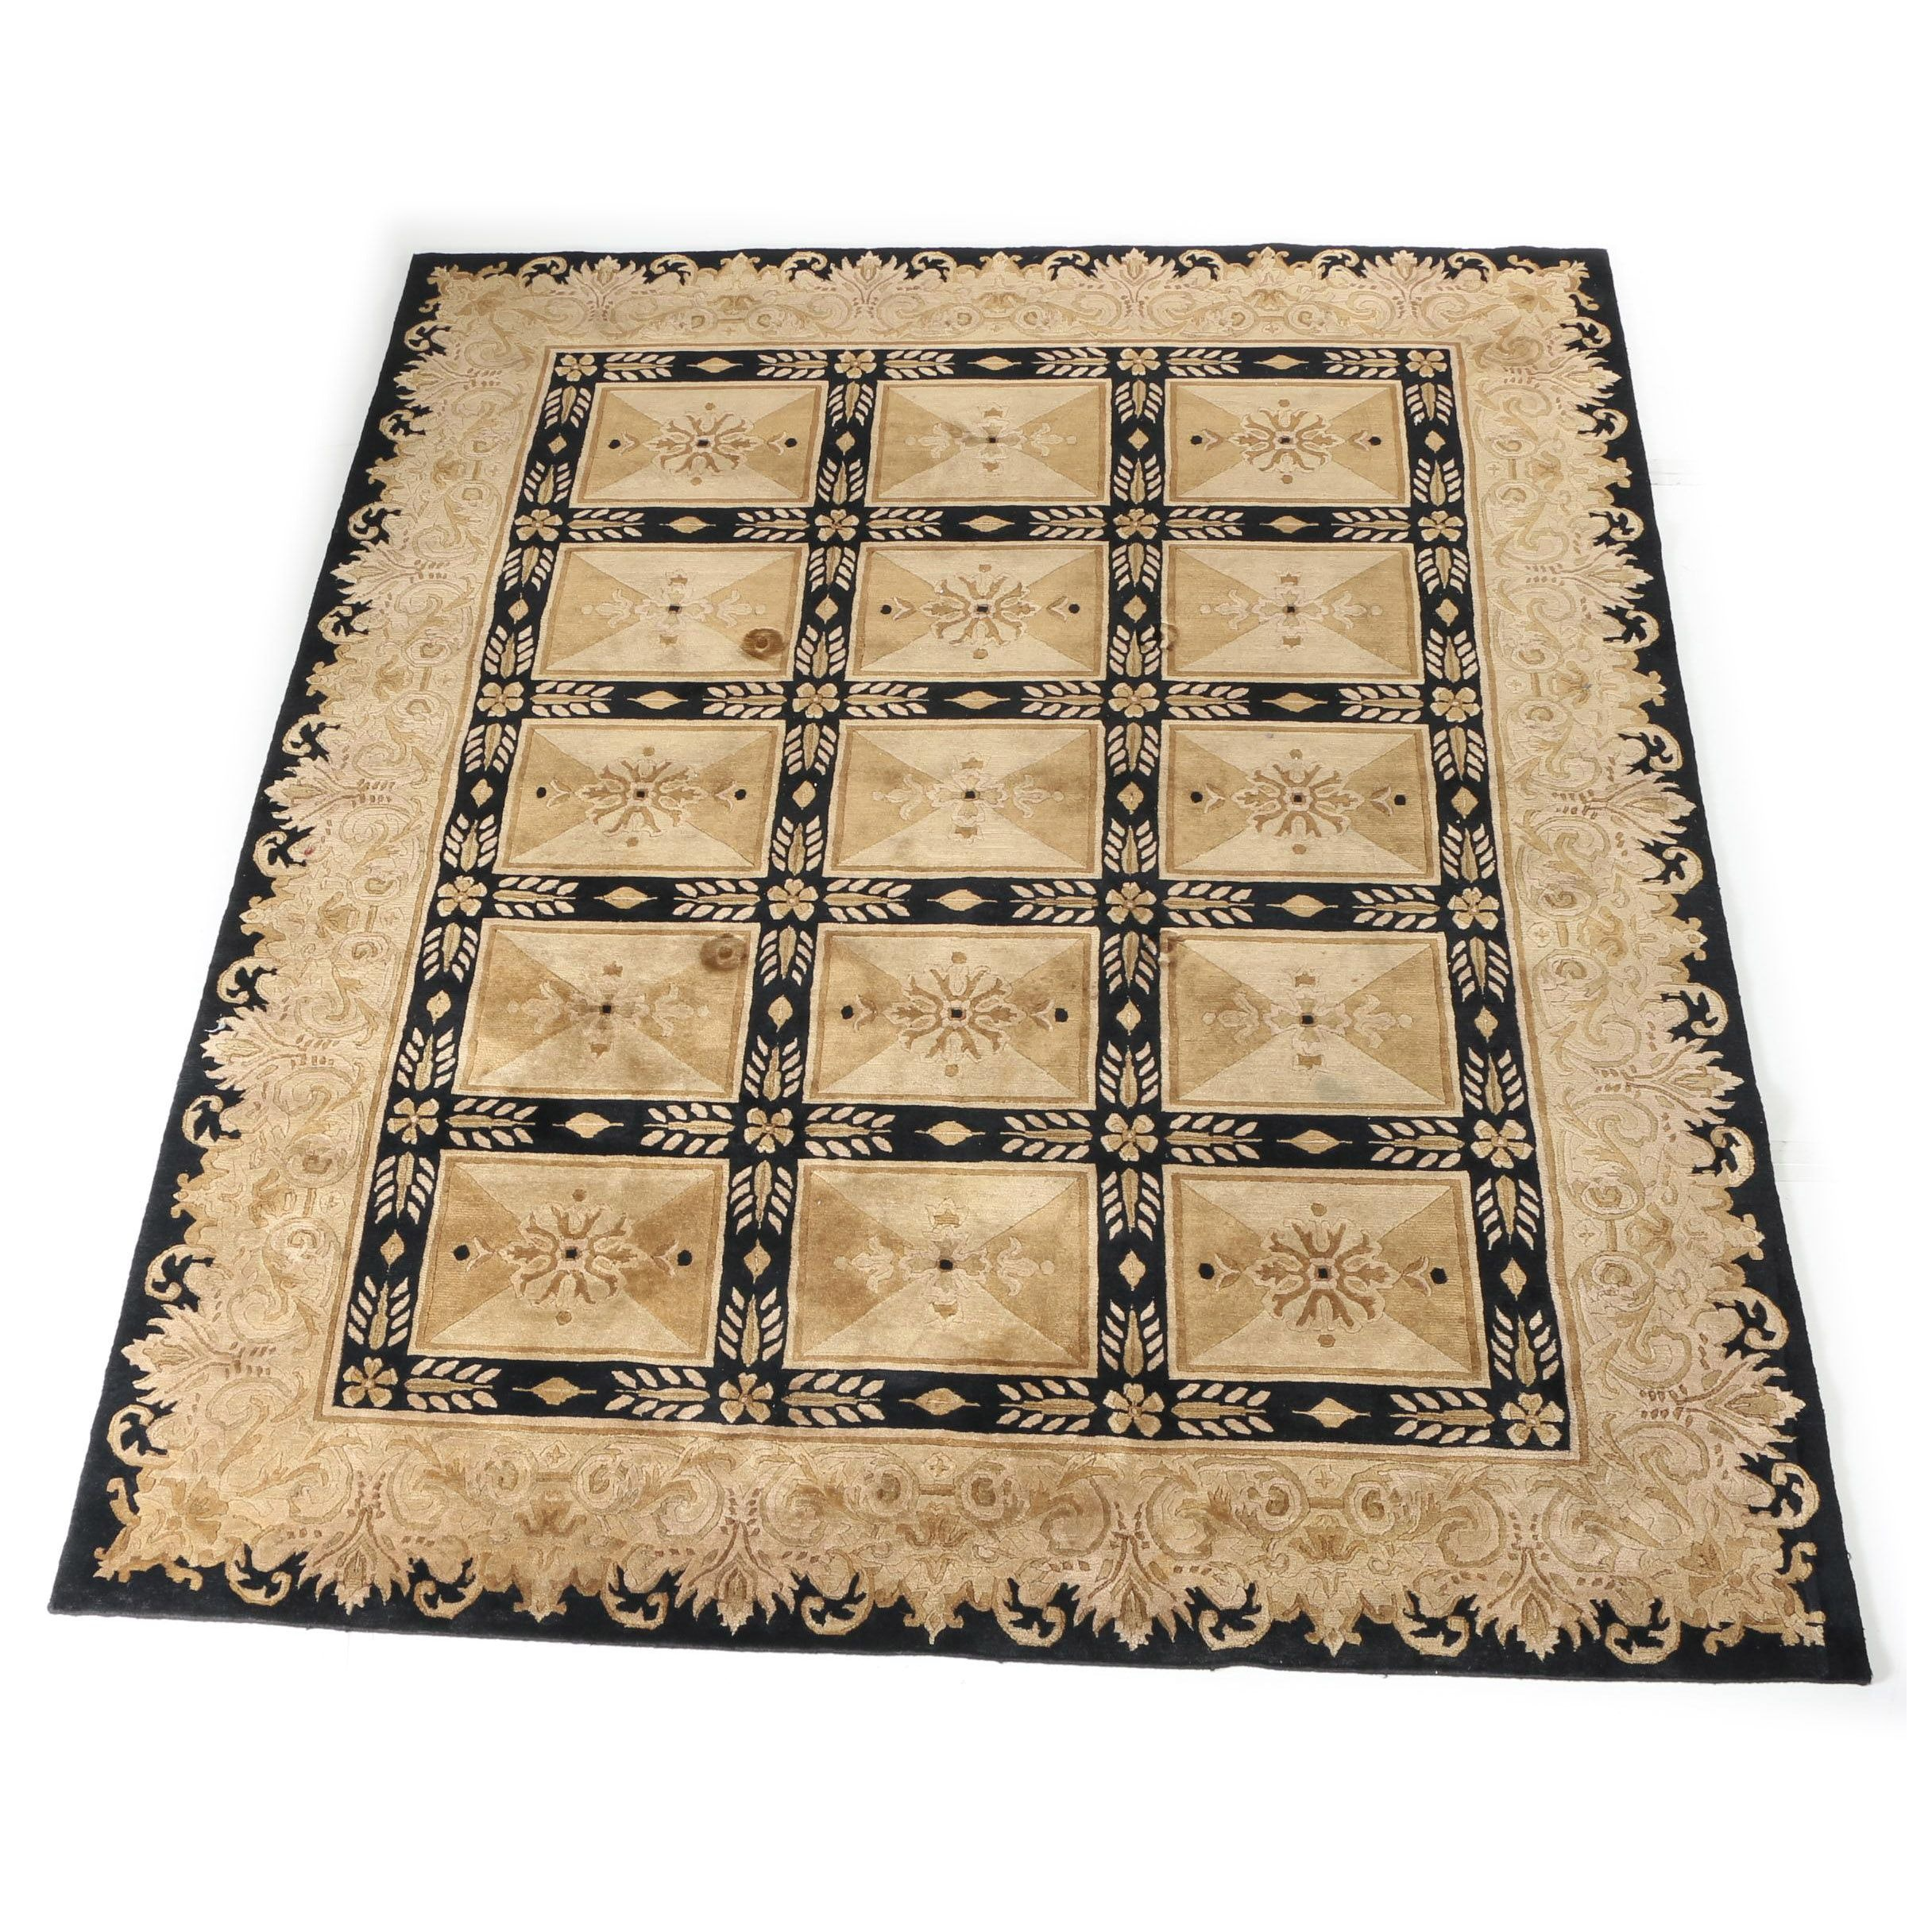 Power-Loomed Neoclassical Carved Wool Area Rug